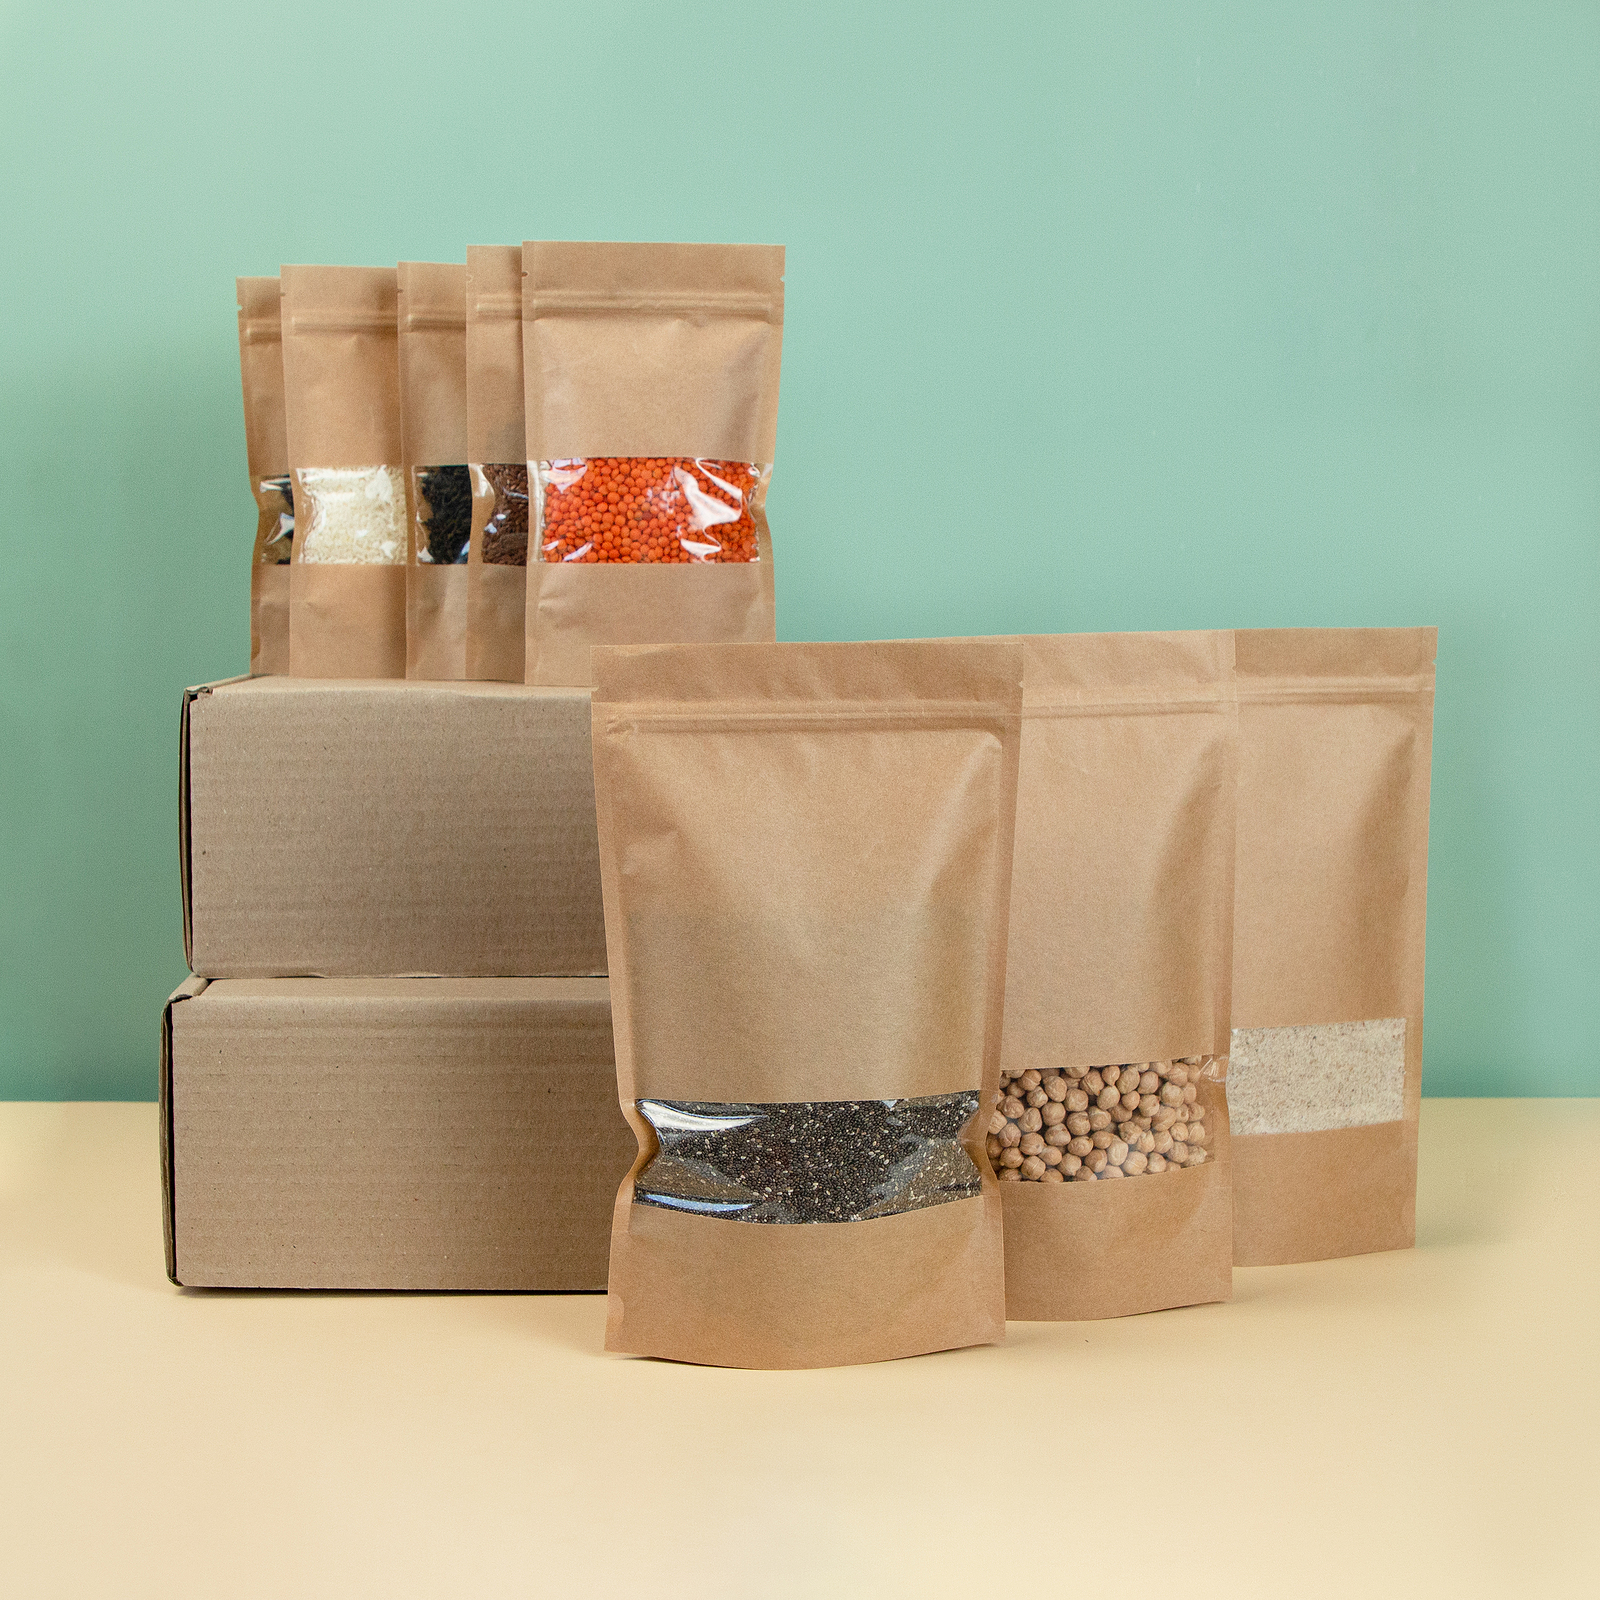 5 Things To Consider When Choosing Product Packaging For Your Food Business